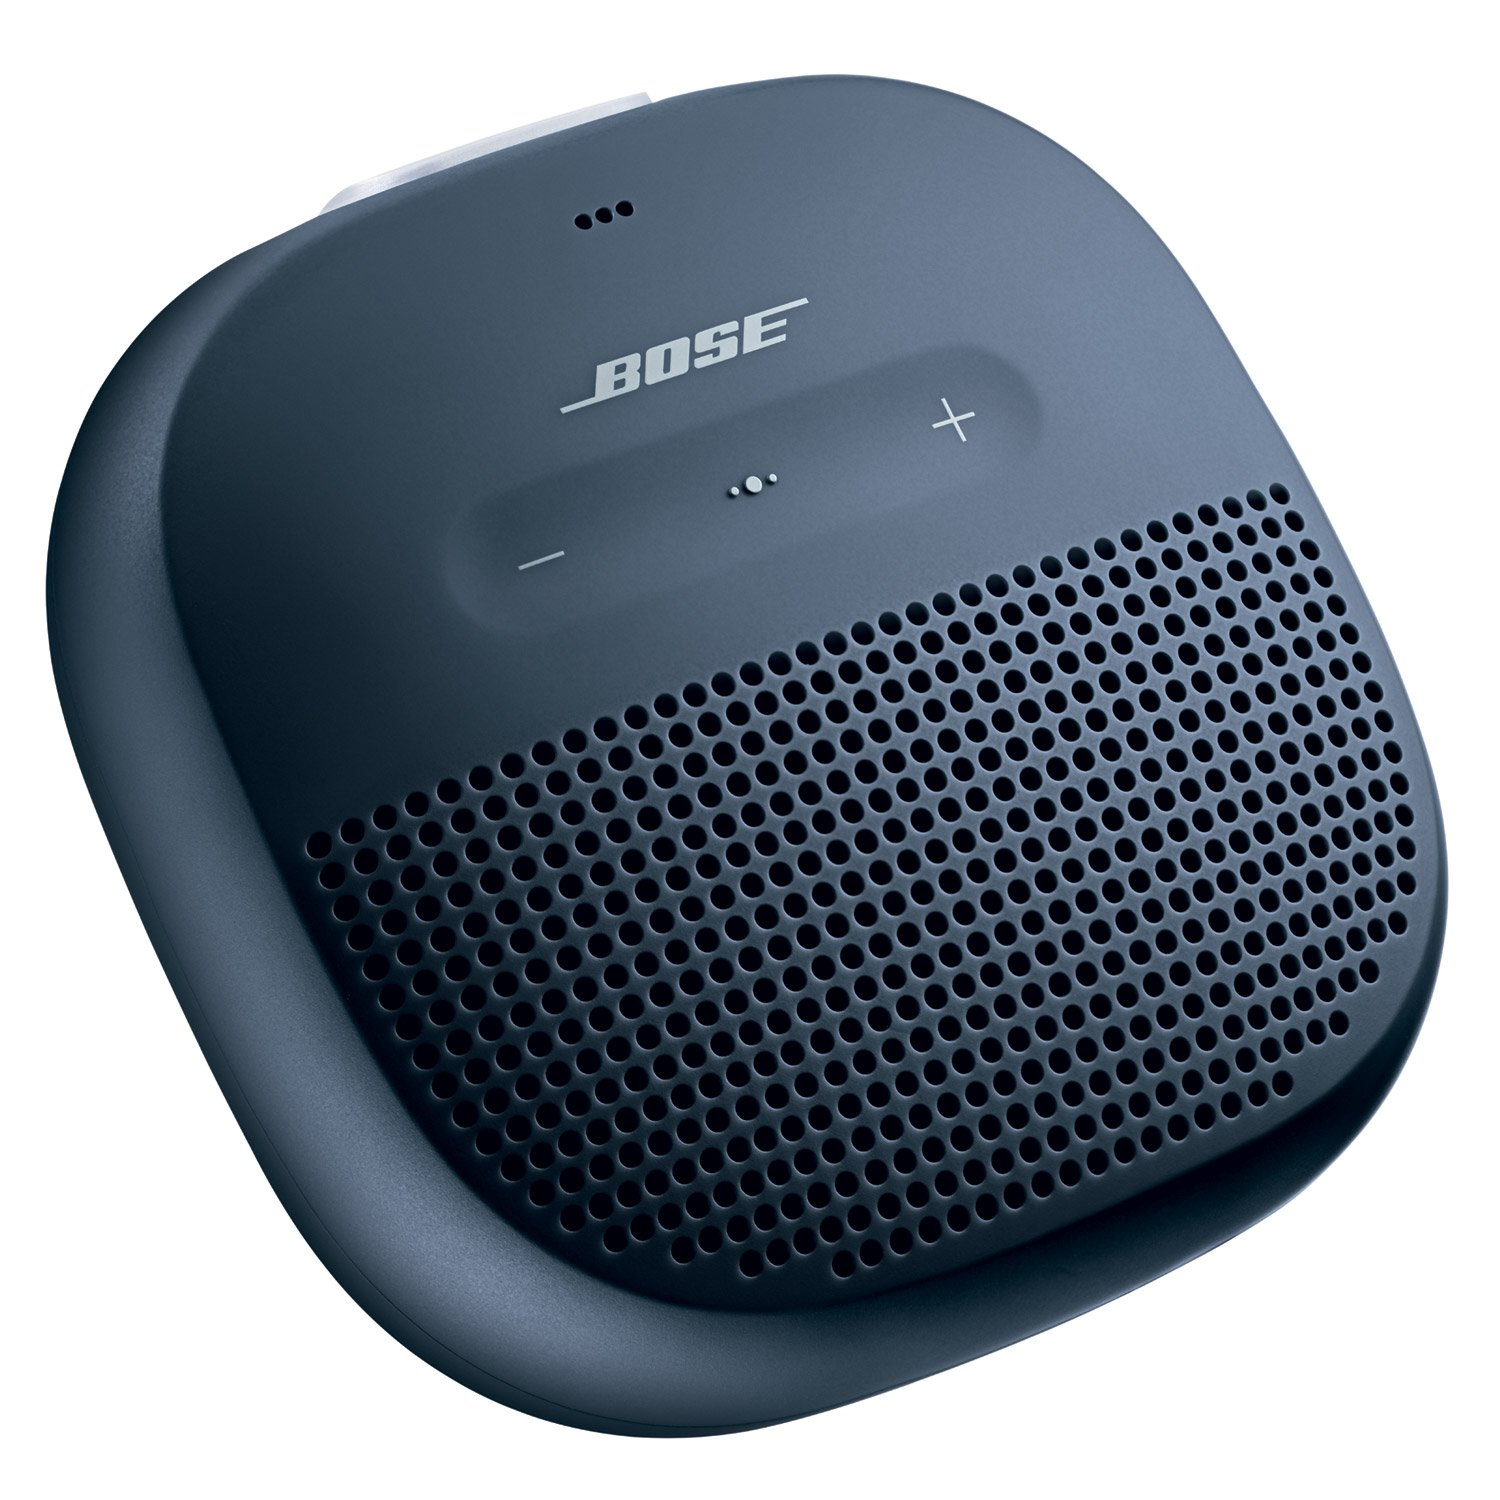 Bose SoundLink Micro Waterproof Bluetooth Speaker, Midnight Blue, with Bose Wall Charger by Bose (Image #2)